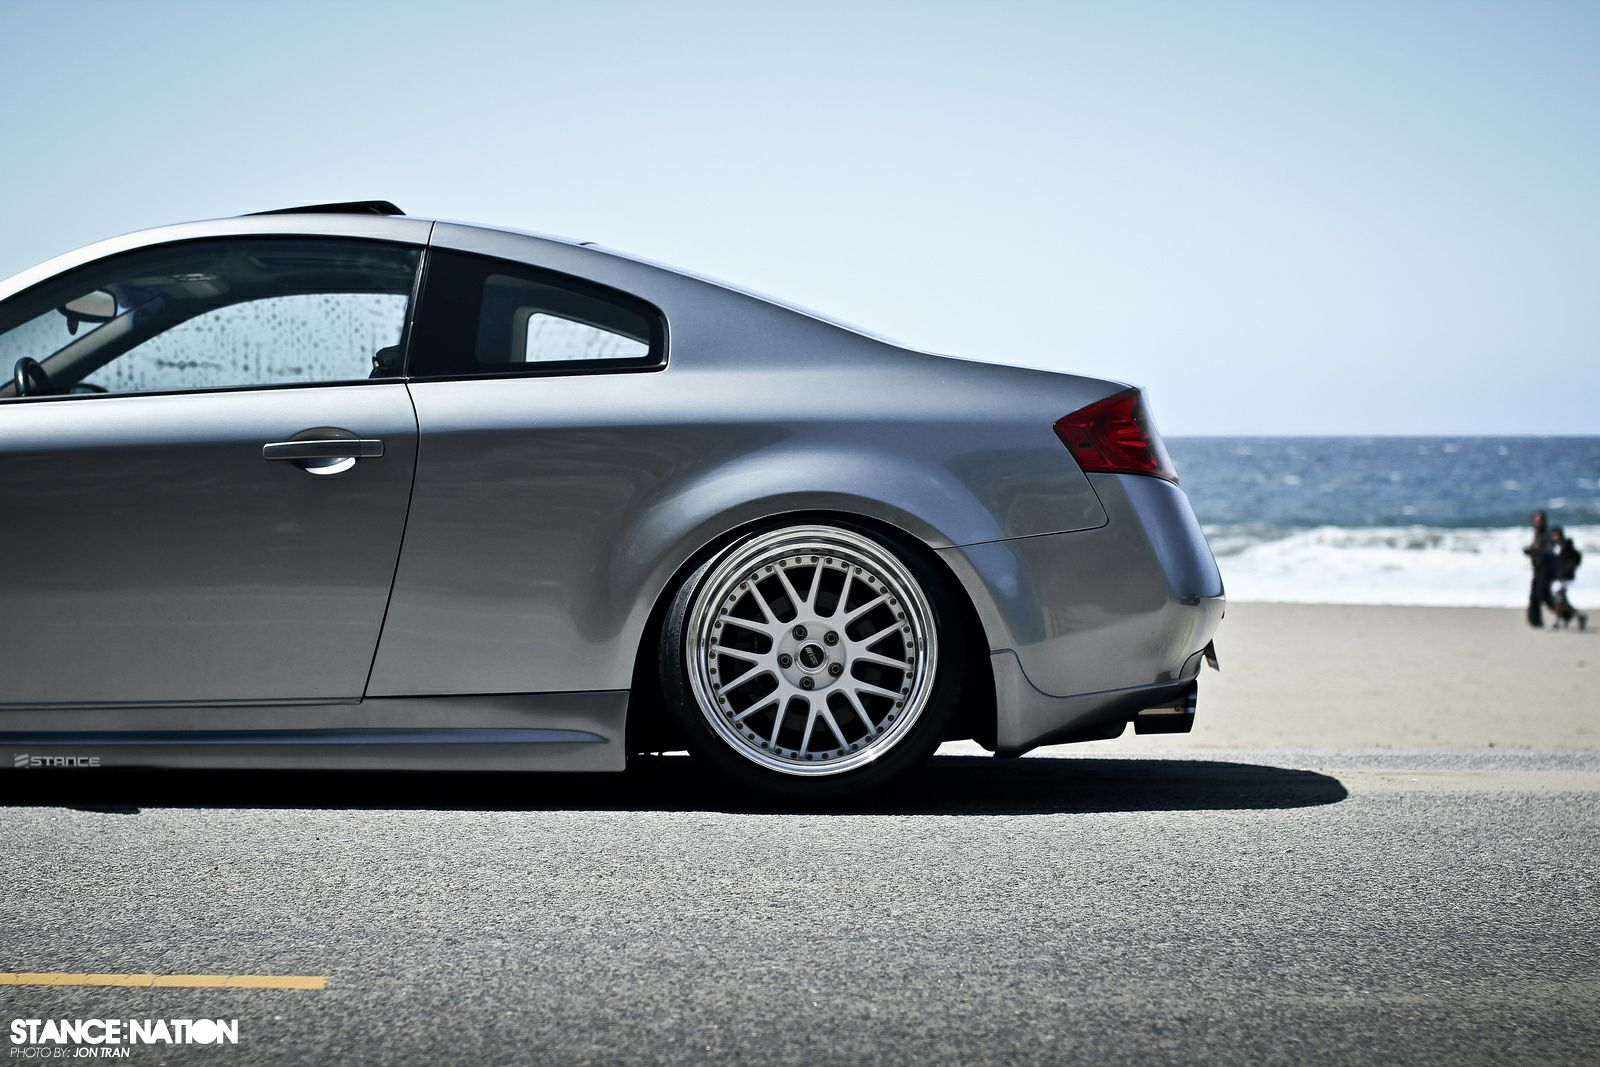 Infiniti G35 Coupe Stance Nation   G35 Coupe   Pinterest ...